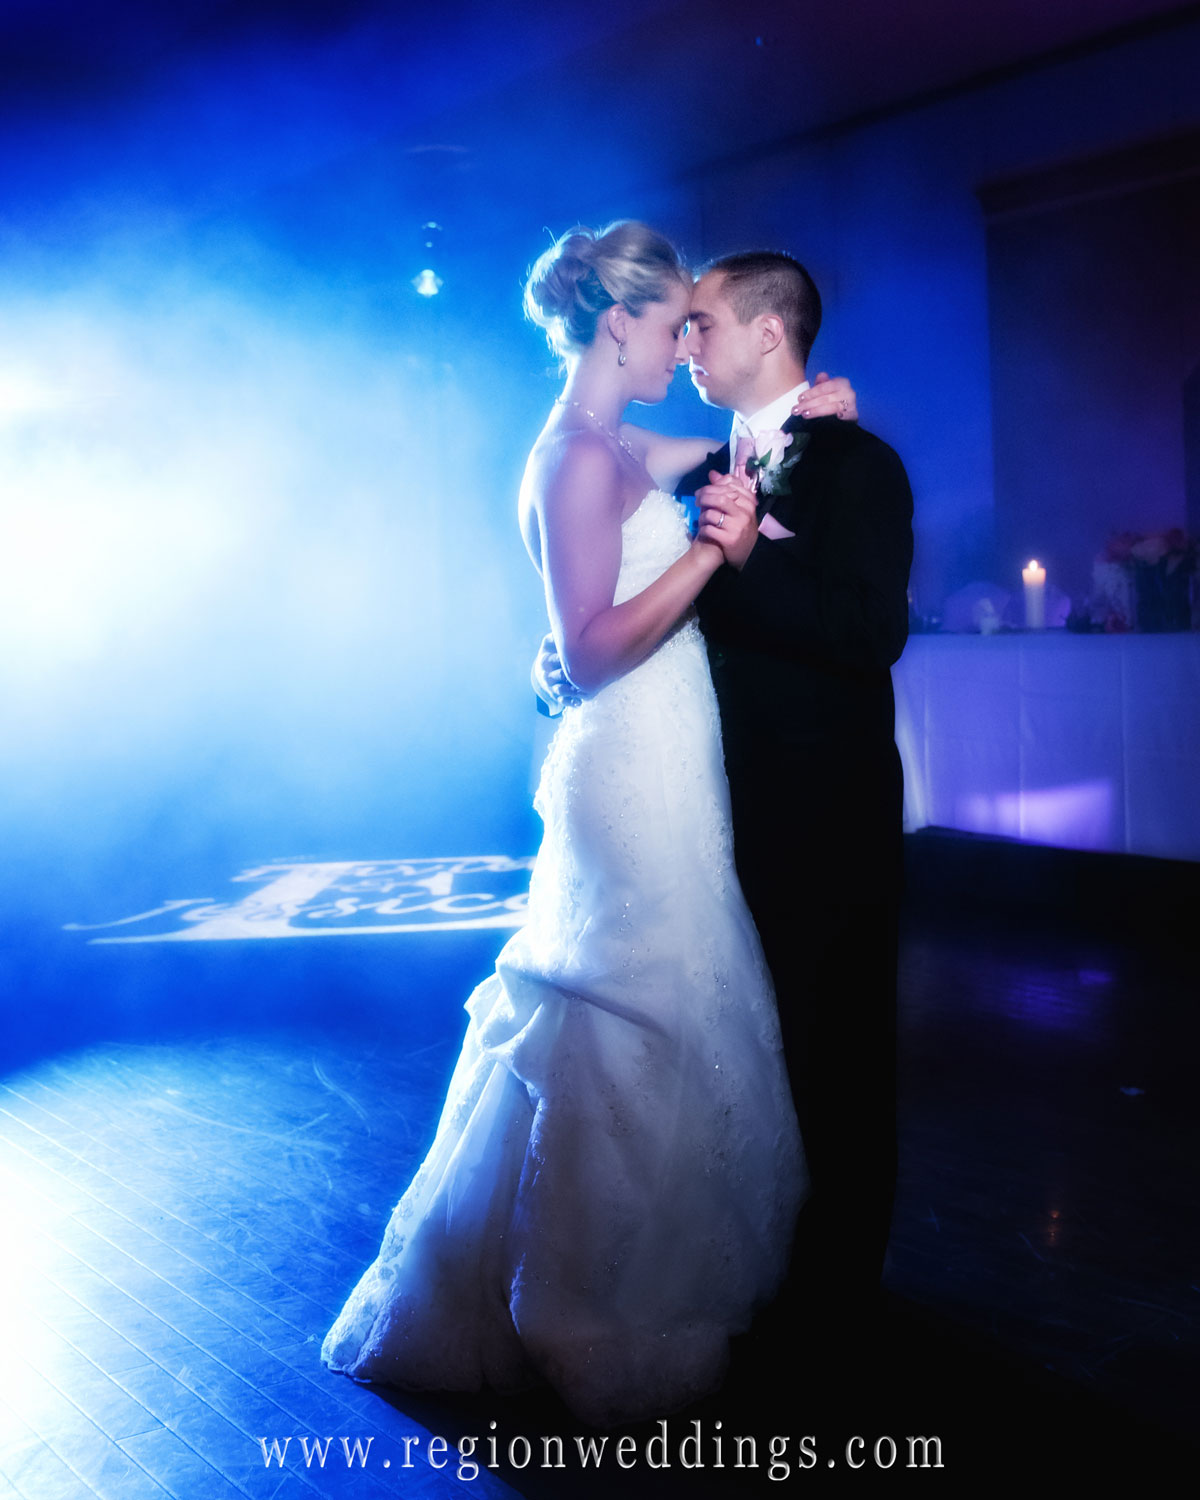 A bride and groom dances their first dance at Avalon Manor in Merrillville as a beautiful blue hue of color engulfs them.